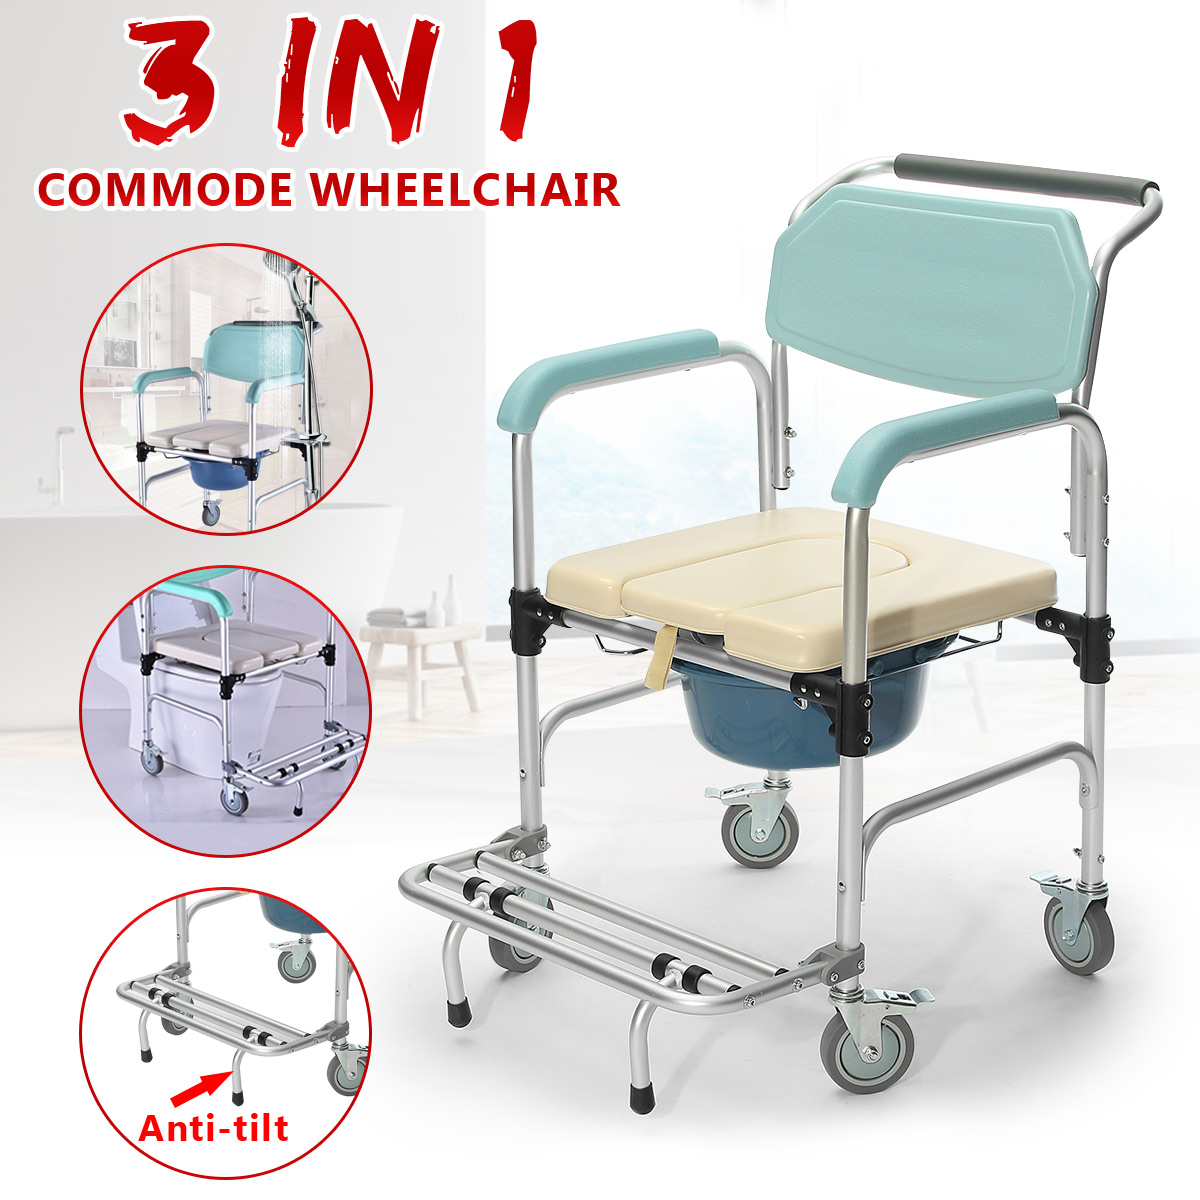 3 In1 Commode Wheelchair Toilet Shower Seat Potty Bathroom Rolling Chair Soft Aluminum Alloy Waterproof Soft Cushion Durable